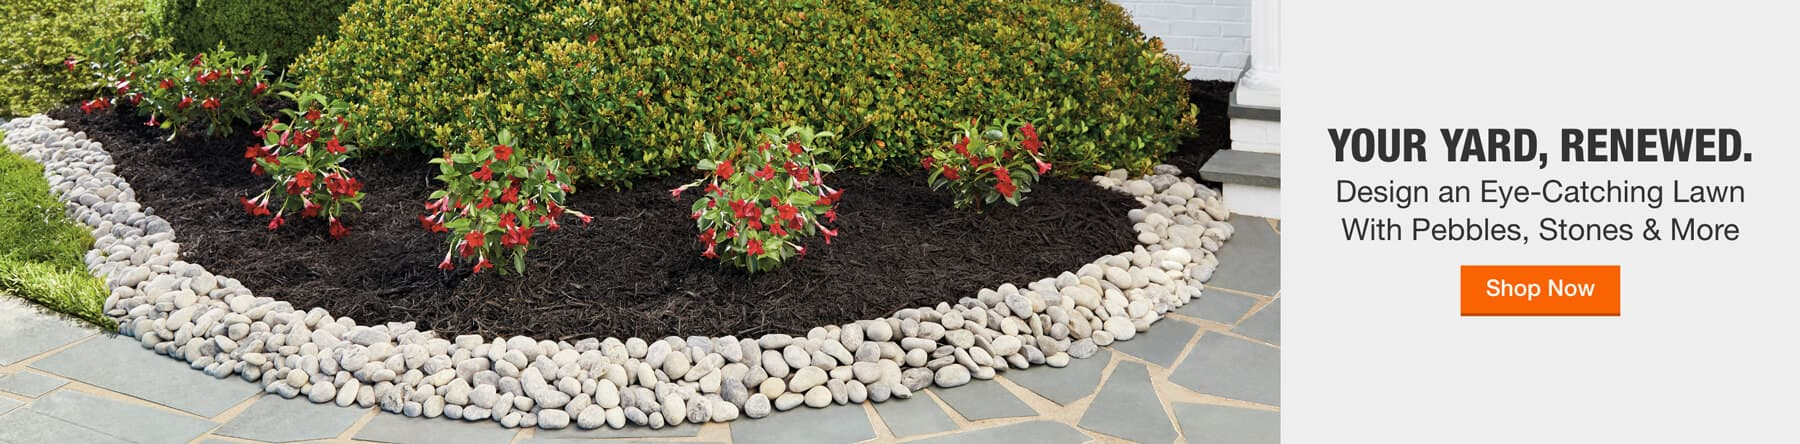 YOUR YARD, RENEWED. Design an Eye-Catching Lawn With Pebbles, Stones & More Shop Now